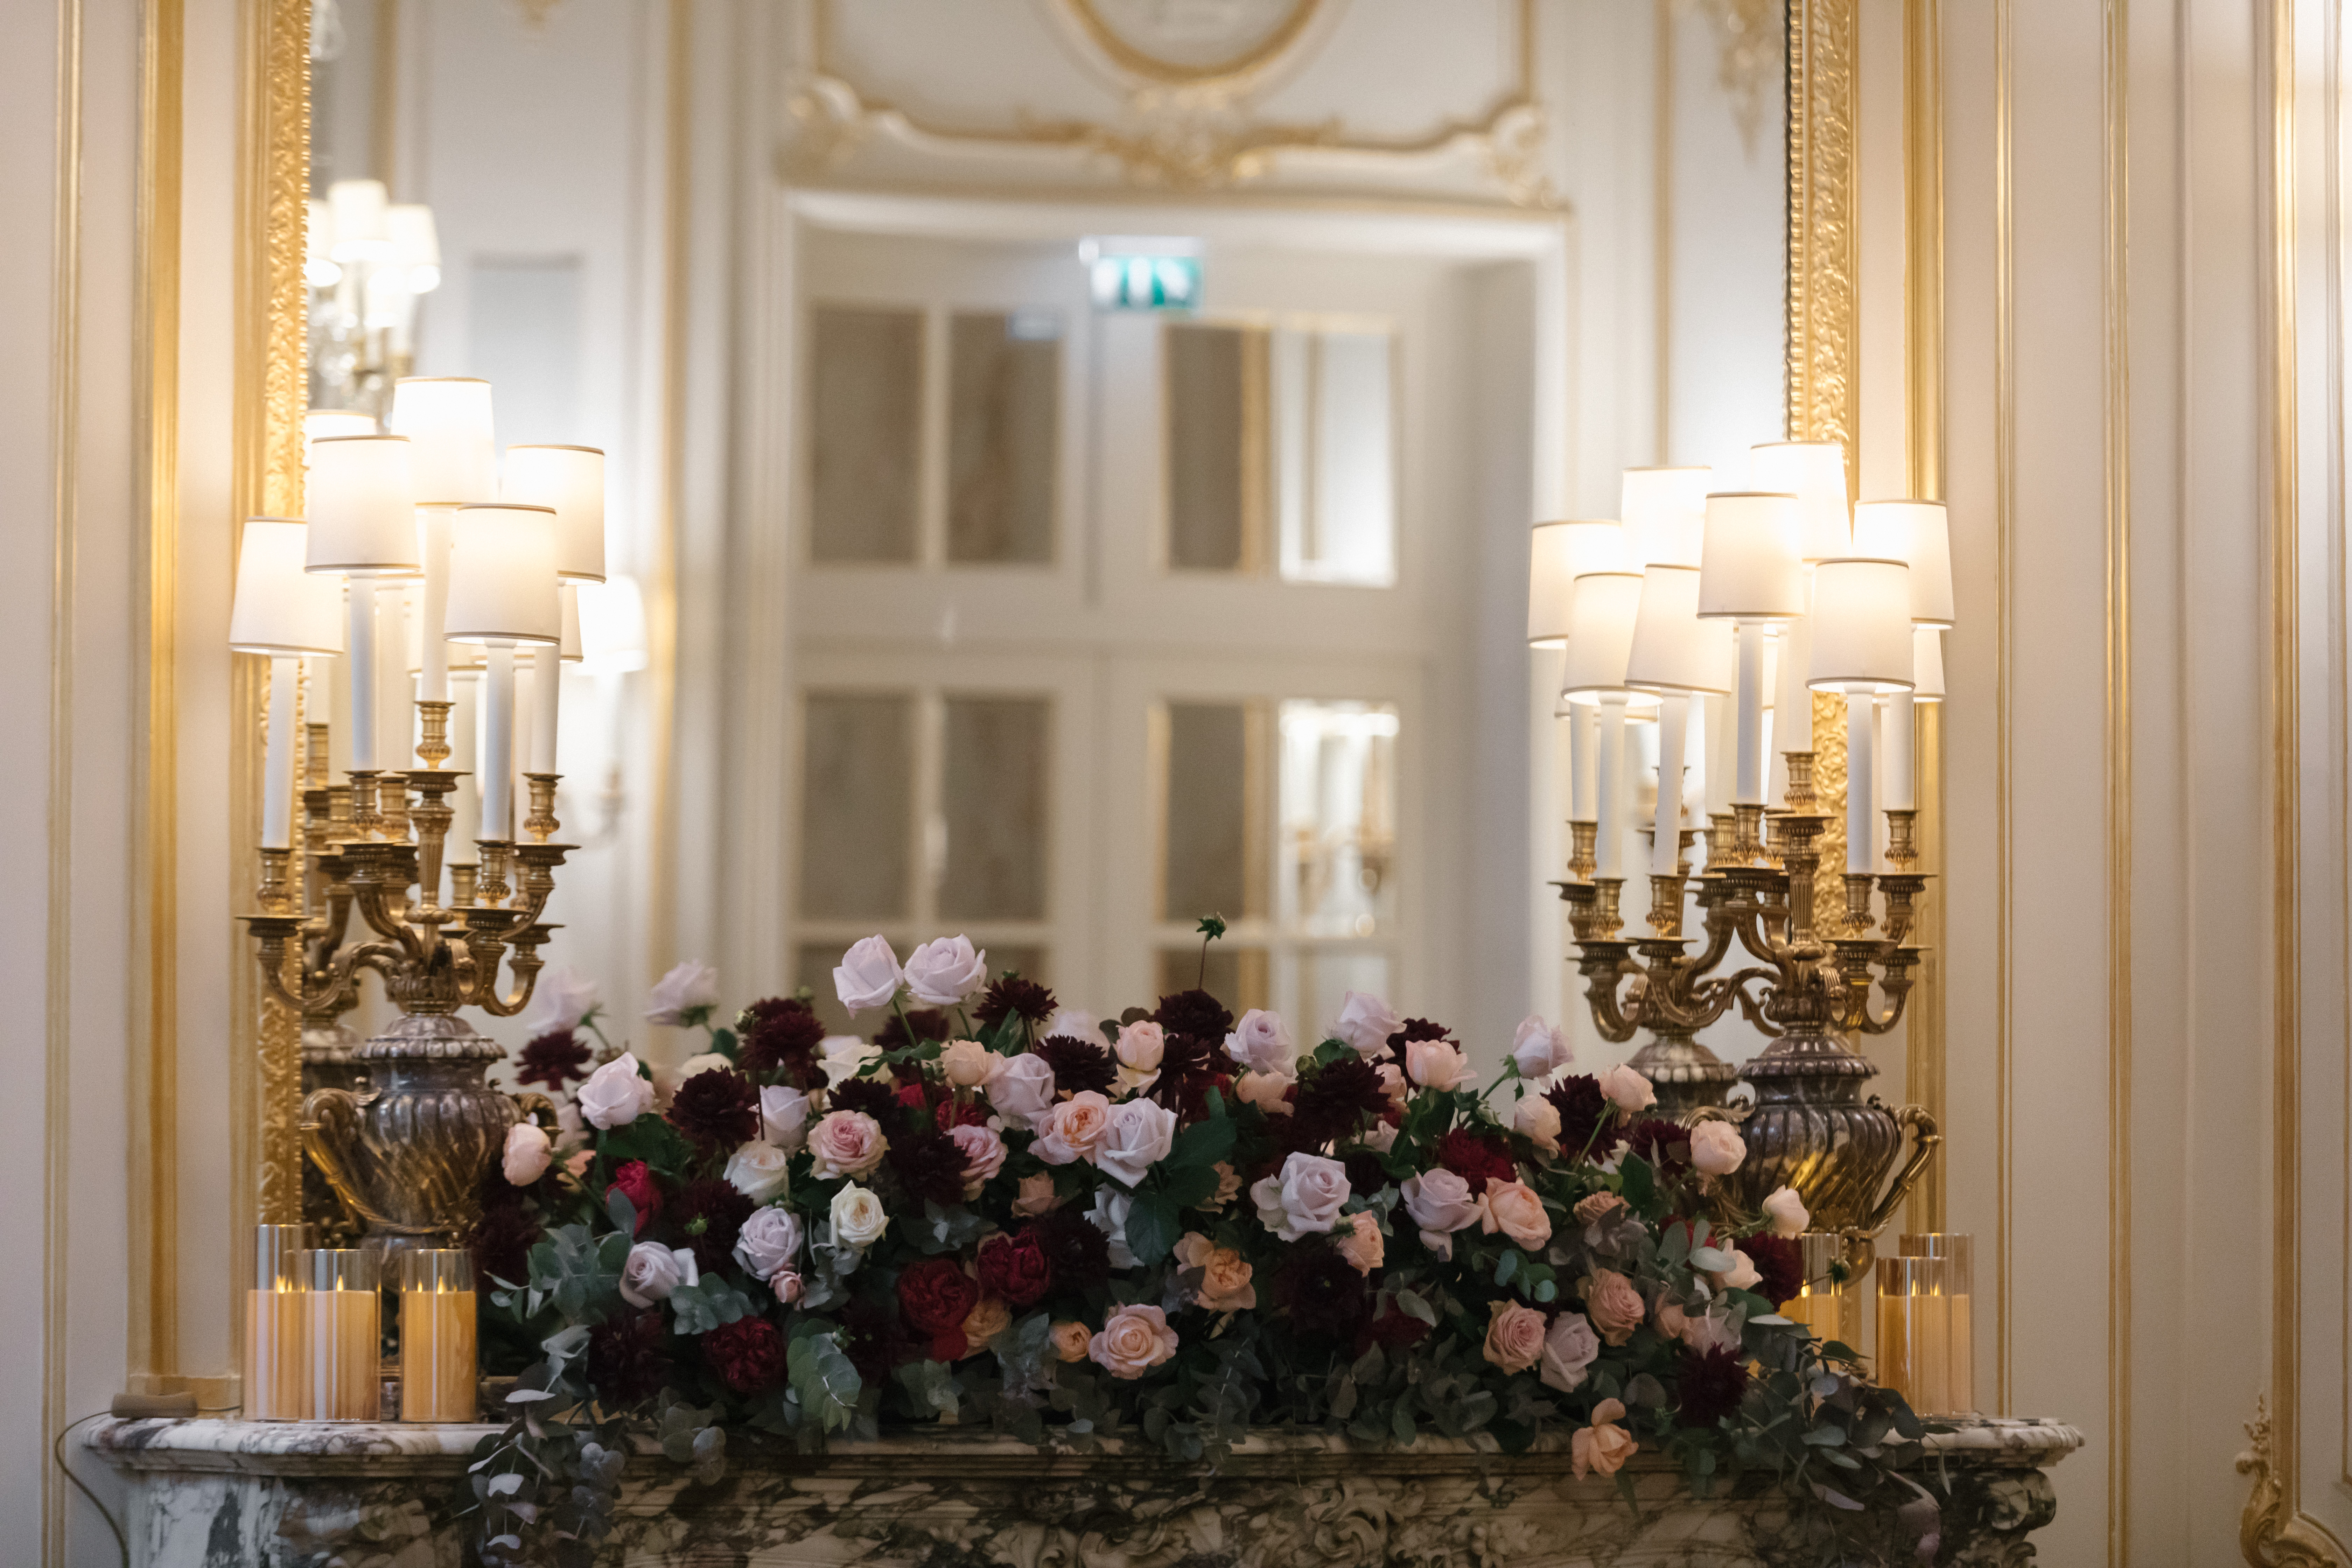 The best hotels venues to get married in Paris